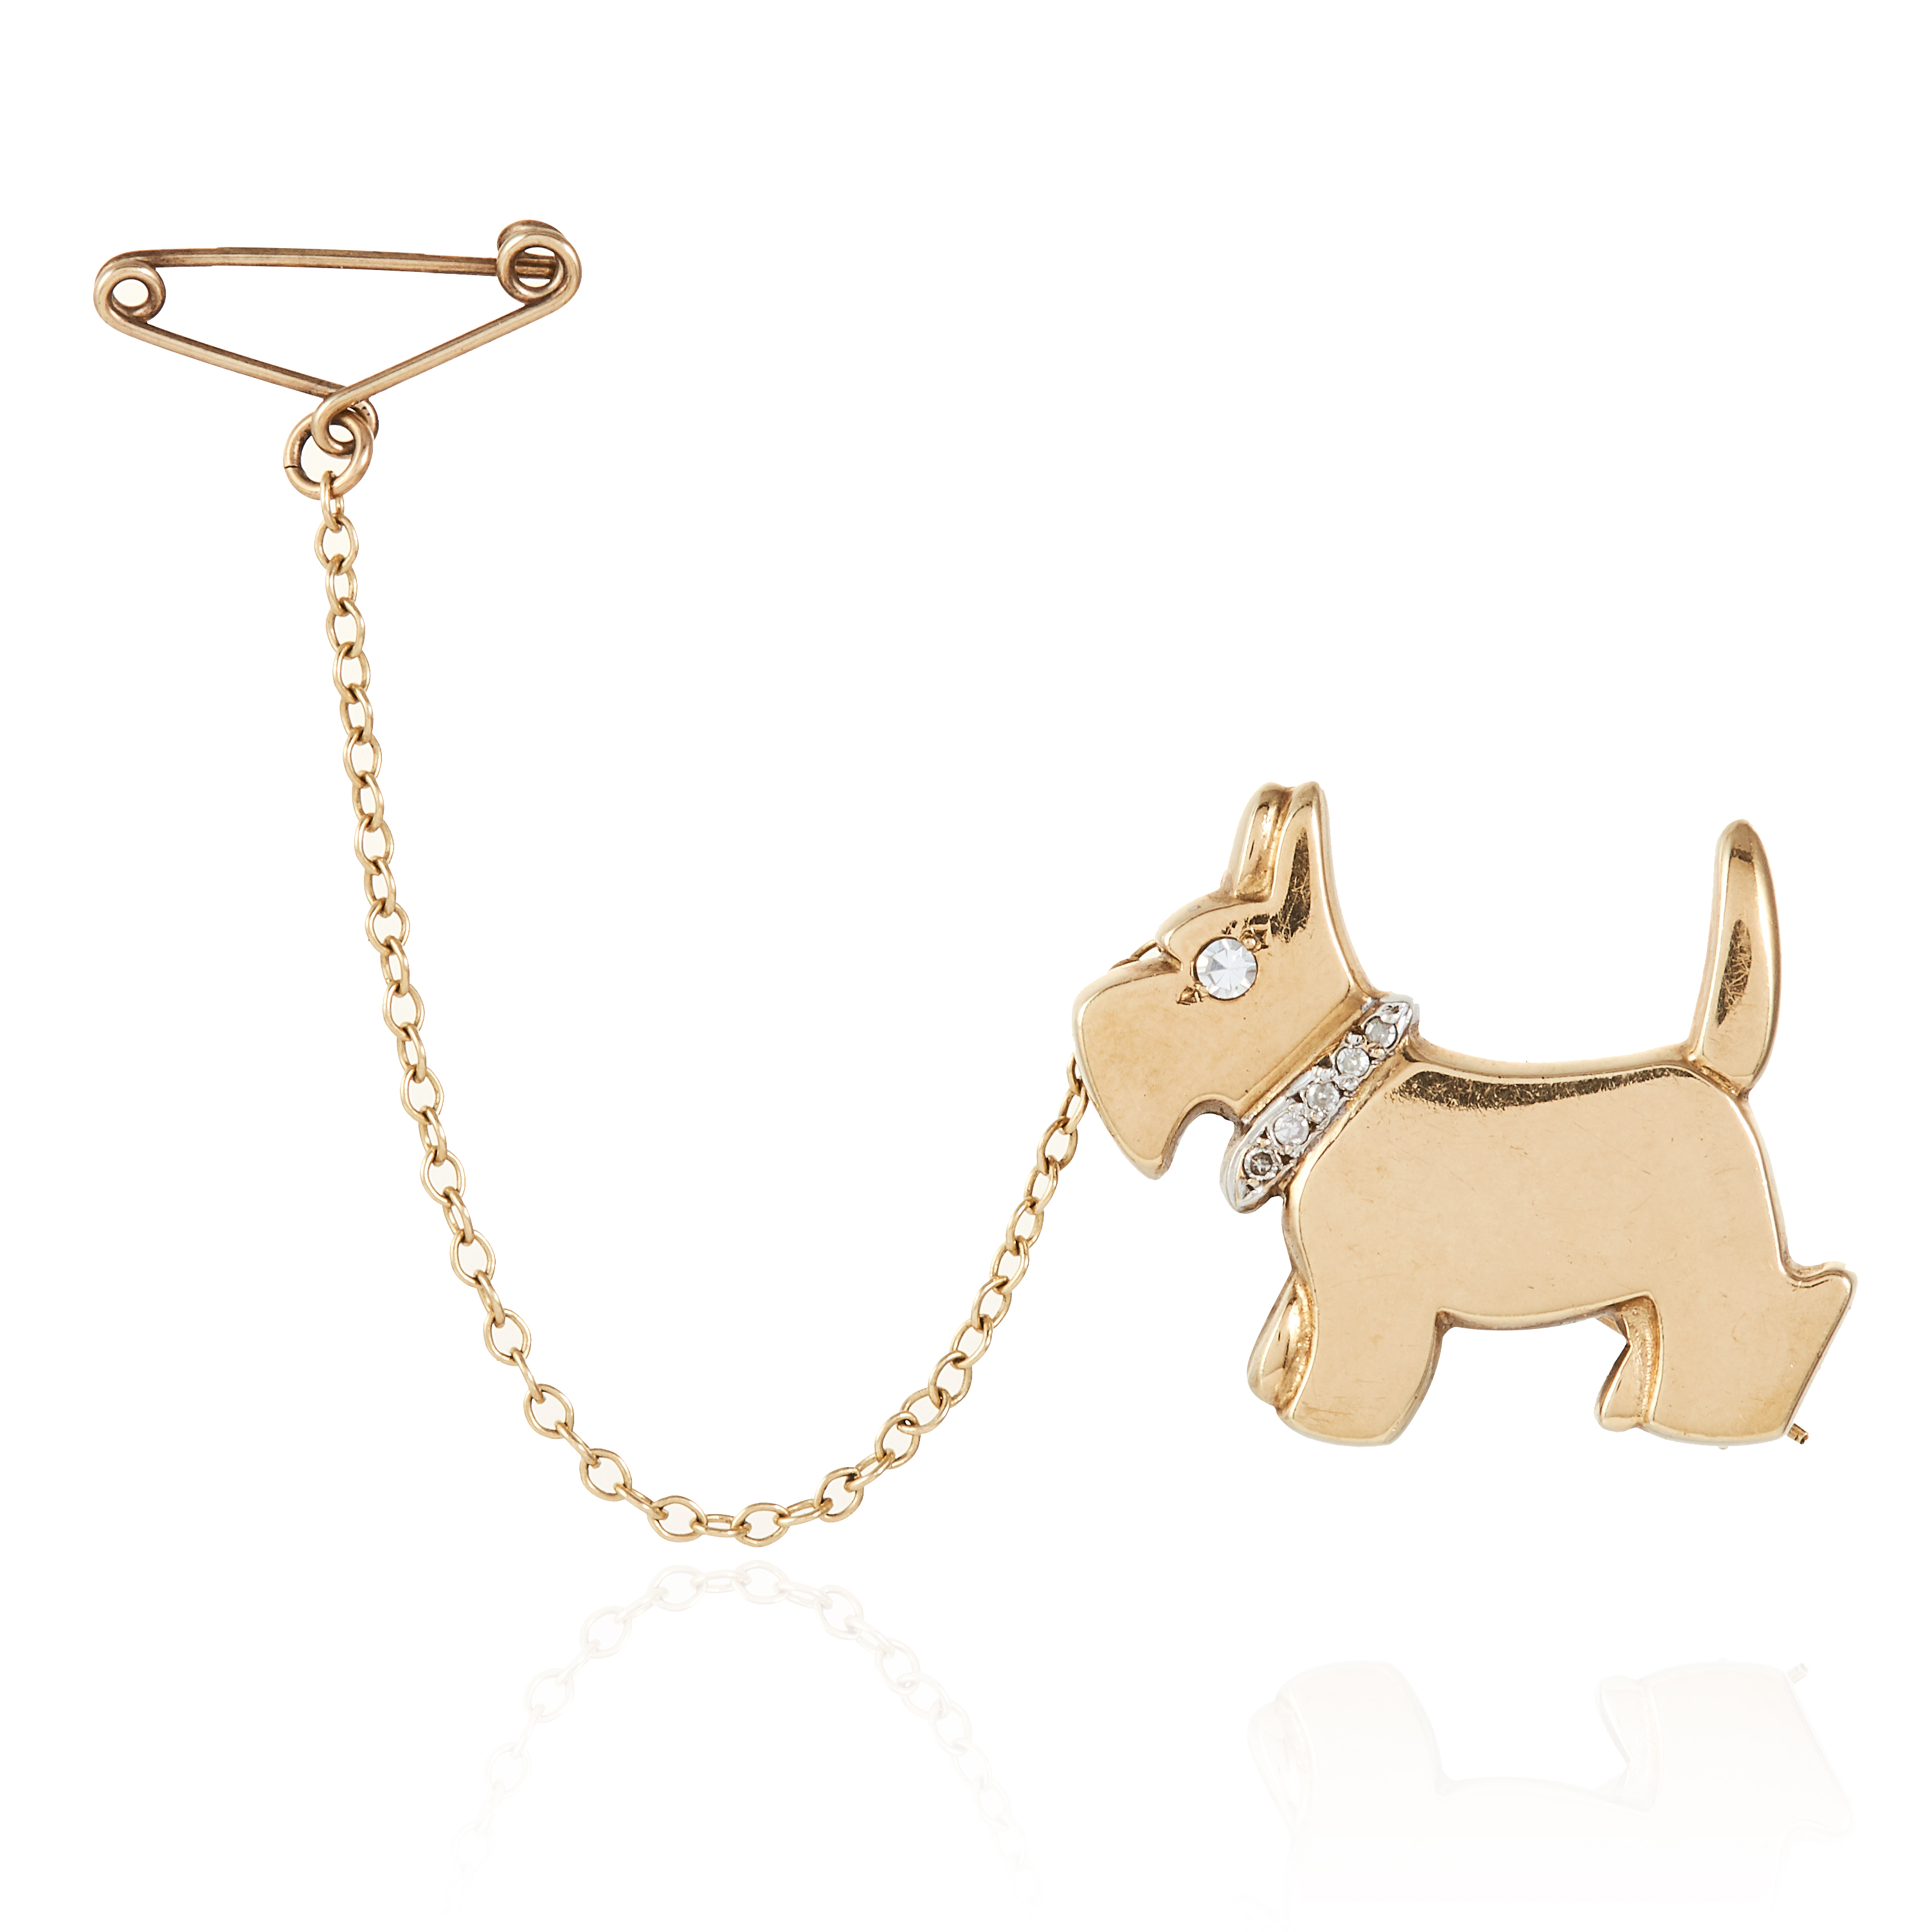 A DIAMOND SCOTTIE DOG BROOCH in yellow gold, designed as a Scottish terrier with diamond jewelled